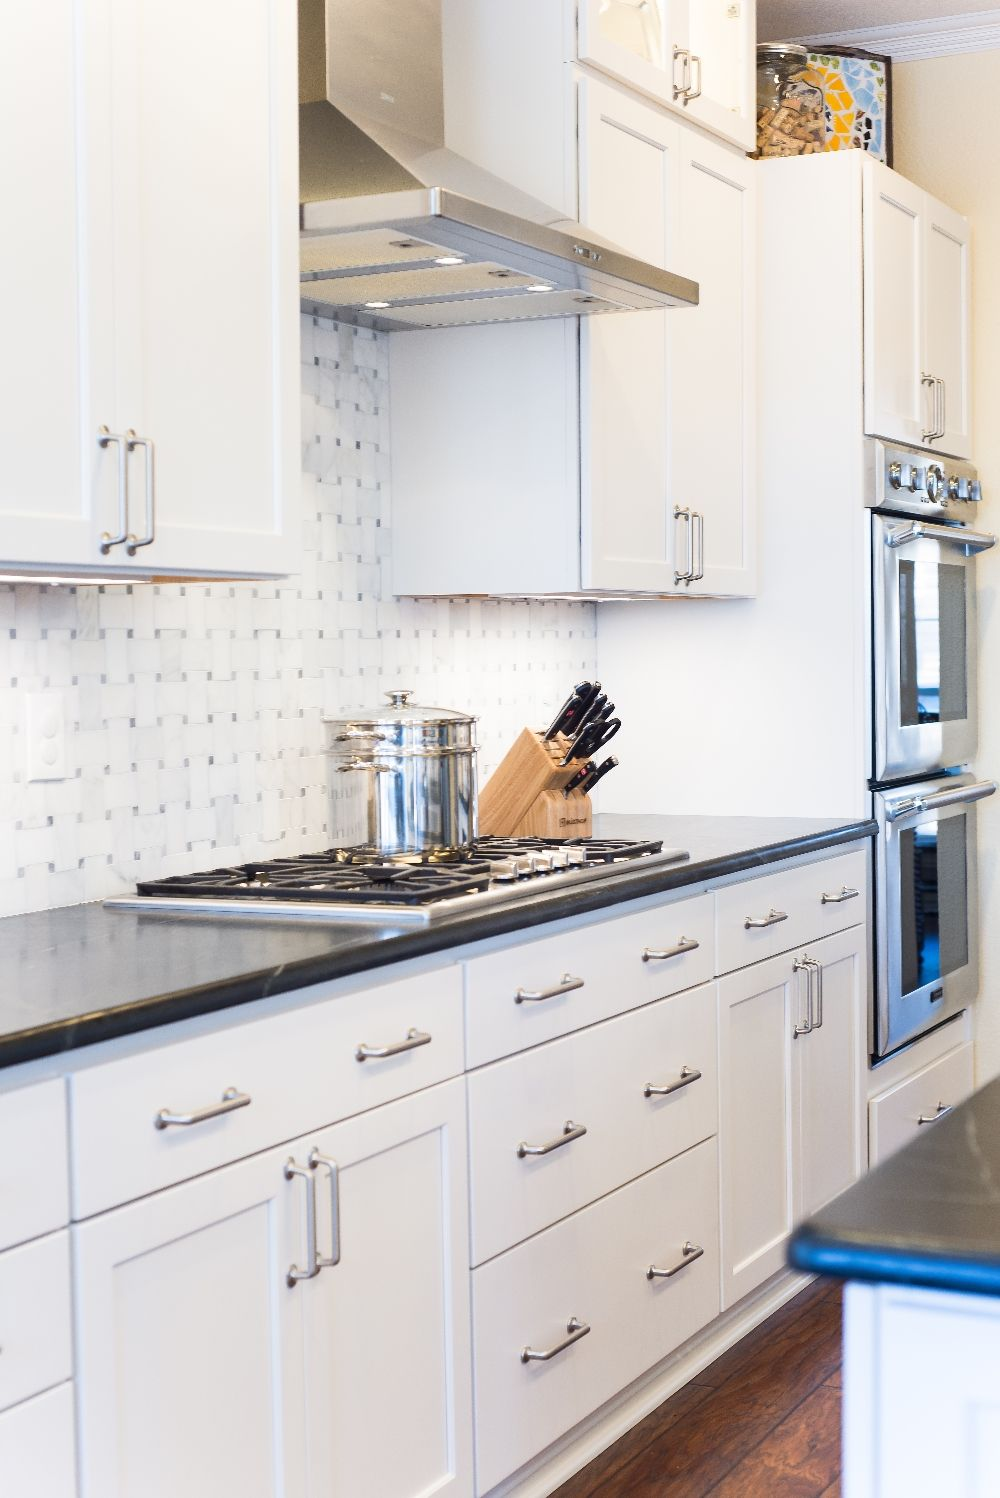 White Shaker Style Cabinets Below Soapstone Countertops Stainless Steel Appliances And A Gas Cooktop Kitchen Remodel White Cooktop Shaker Style Cabinets